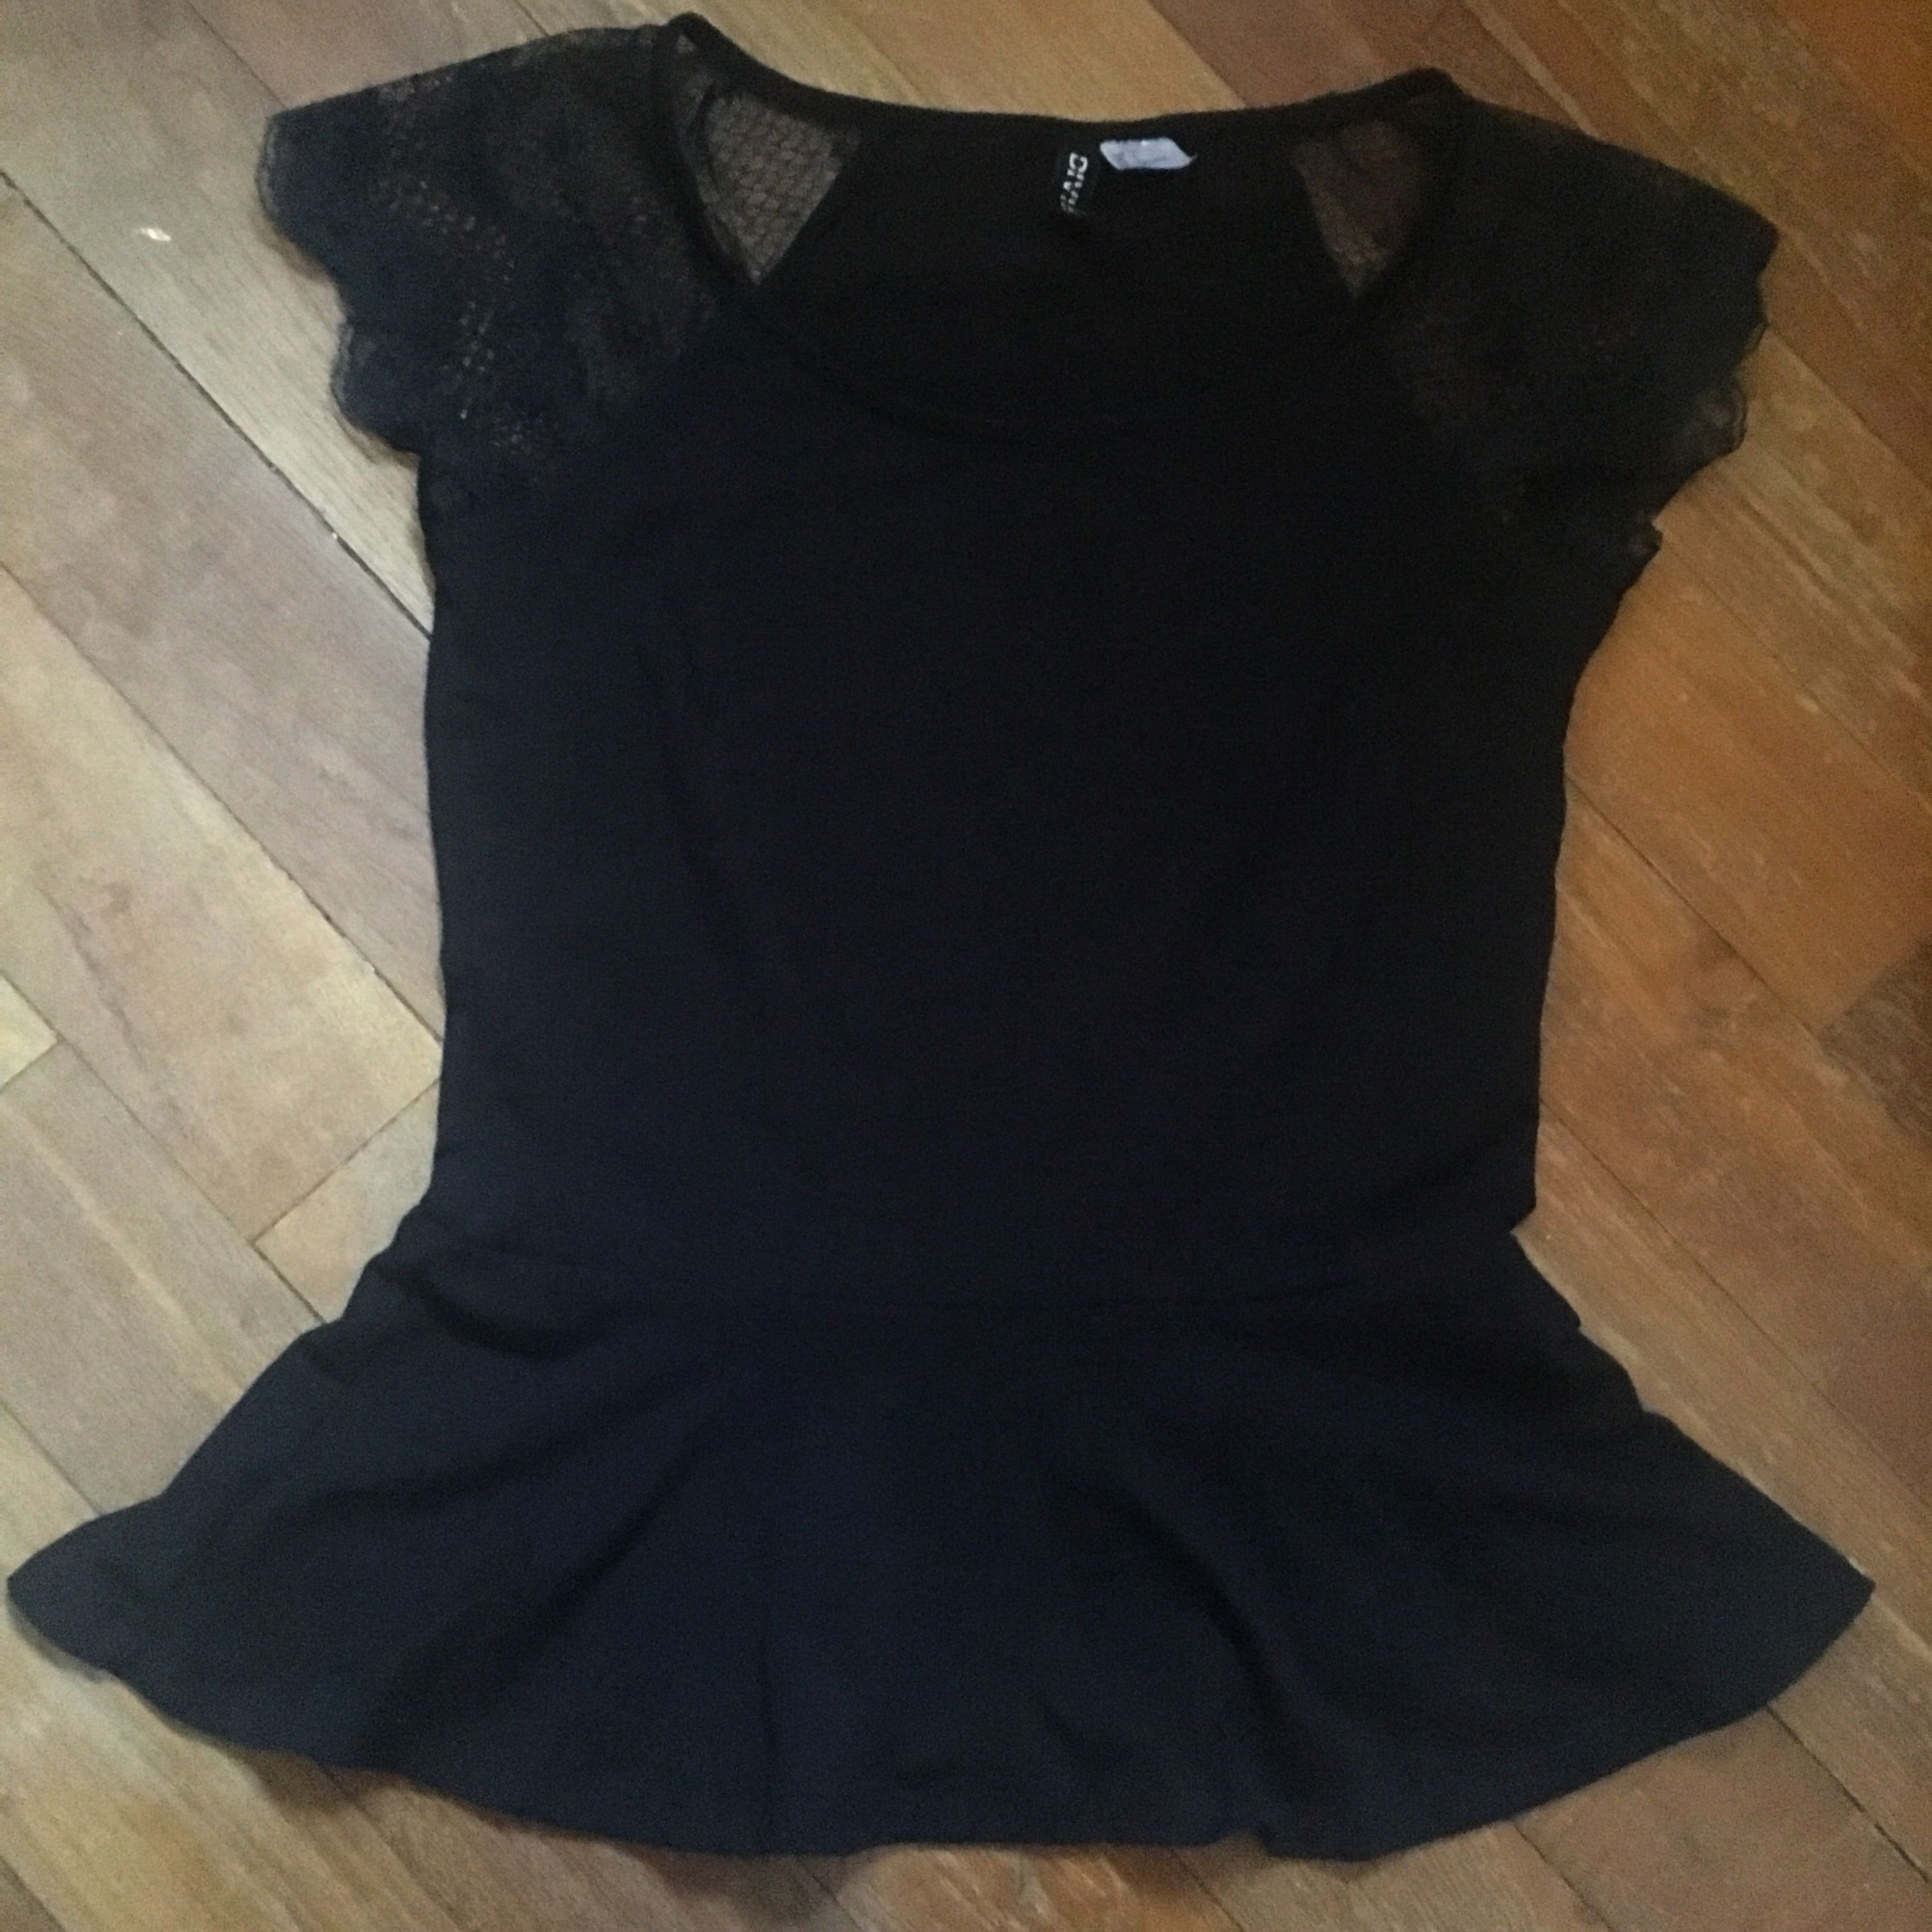 508f8807dfbee1 H&M Black Lace Sleeve Peplum Top, Women's Fashion, Clothes, Tops on ...